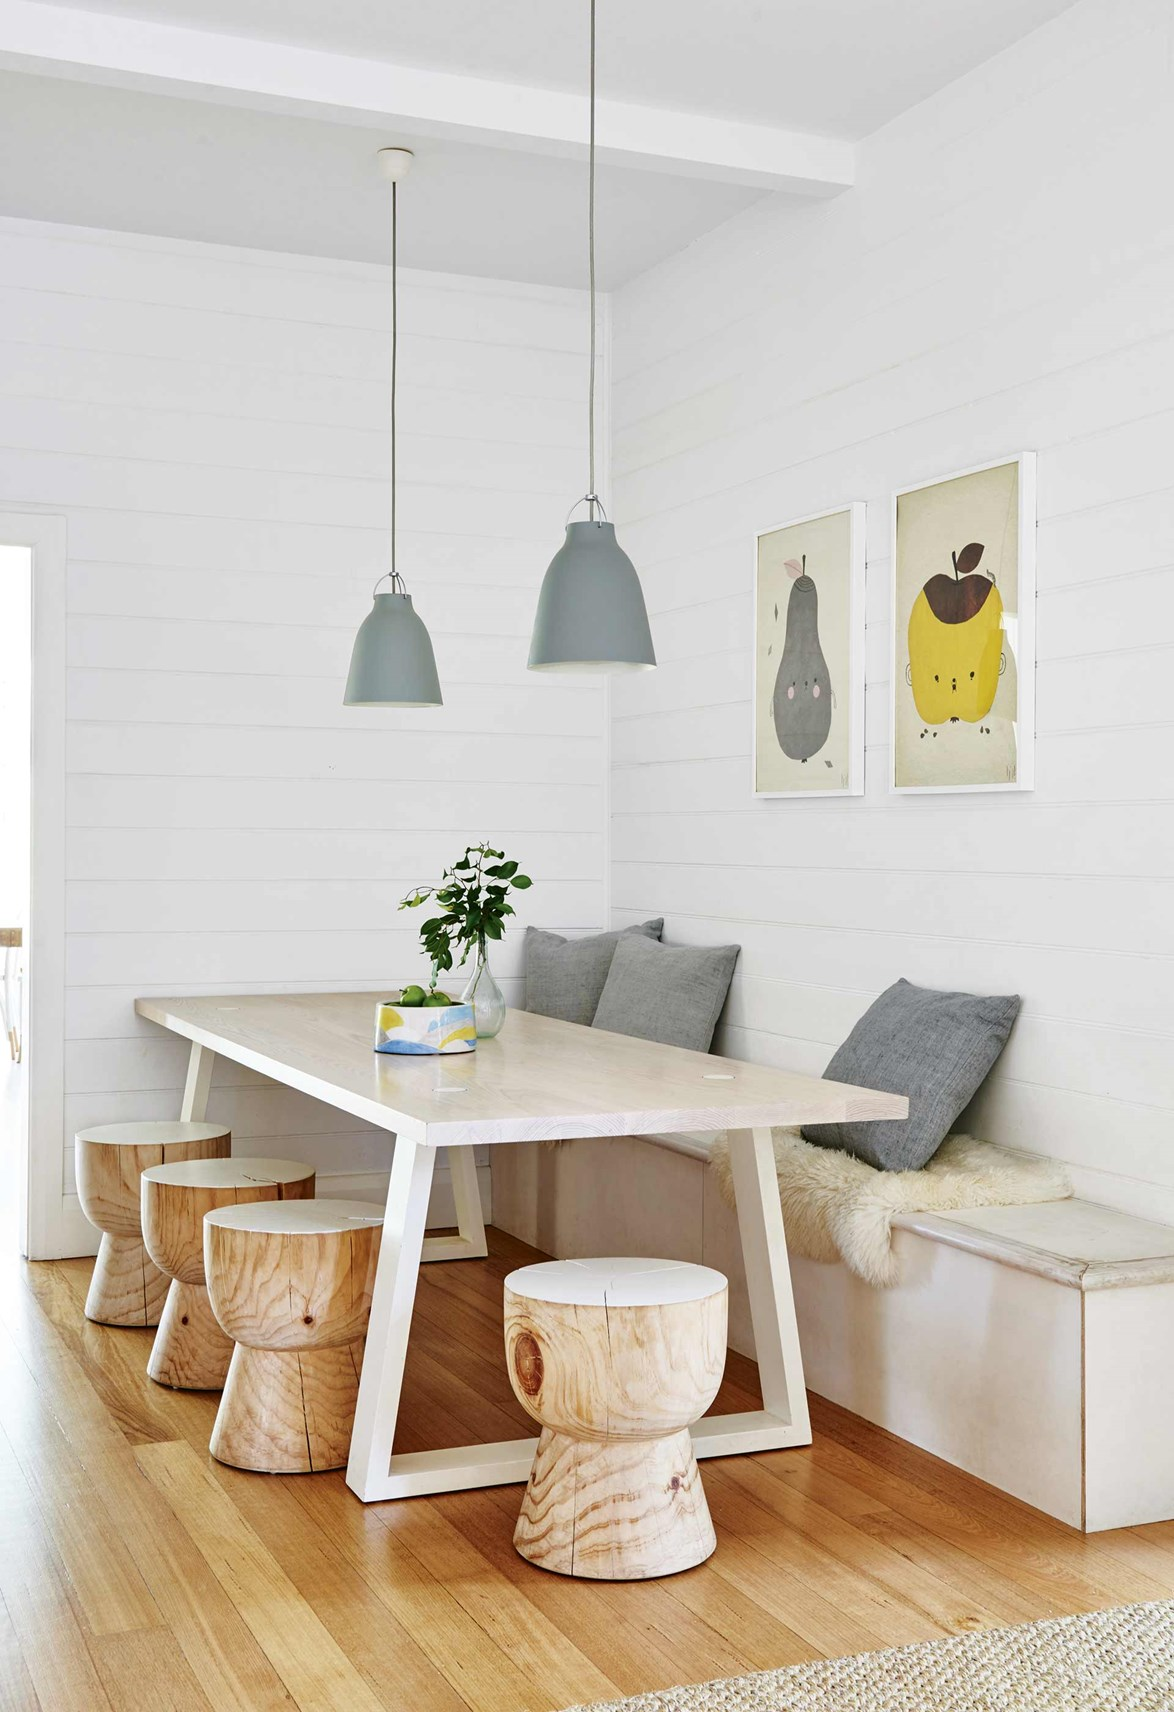 "The casual dining nook in the kitchen of this [Barwon Heads beach house](https://www.homestolove.com.au/californian-bungalow-barwon-heads-17909|target=""_blank"") features a custom bench seat crafted by builder Mark Mulheron, as well as a table and 'Eggcup' stools from Mark Tuckey."